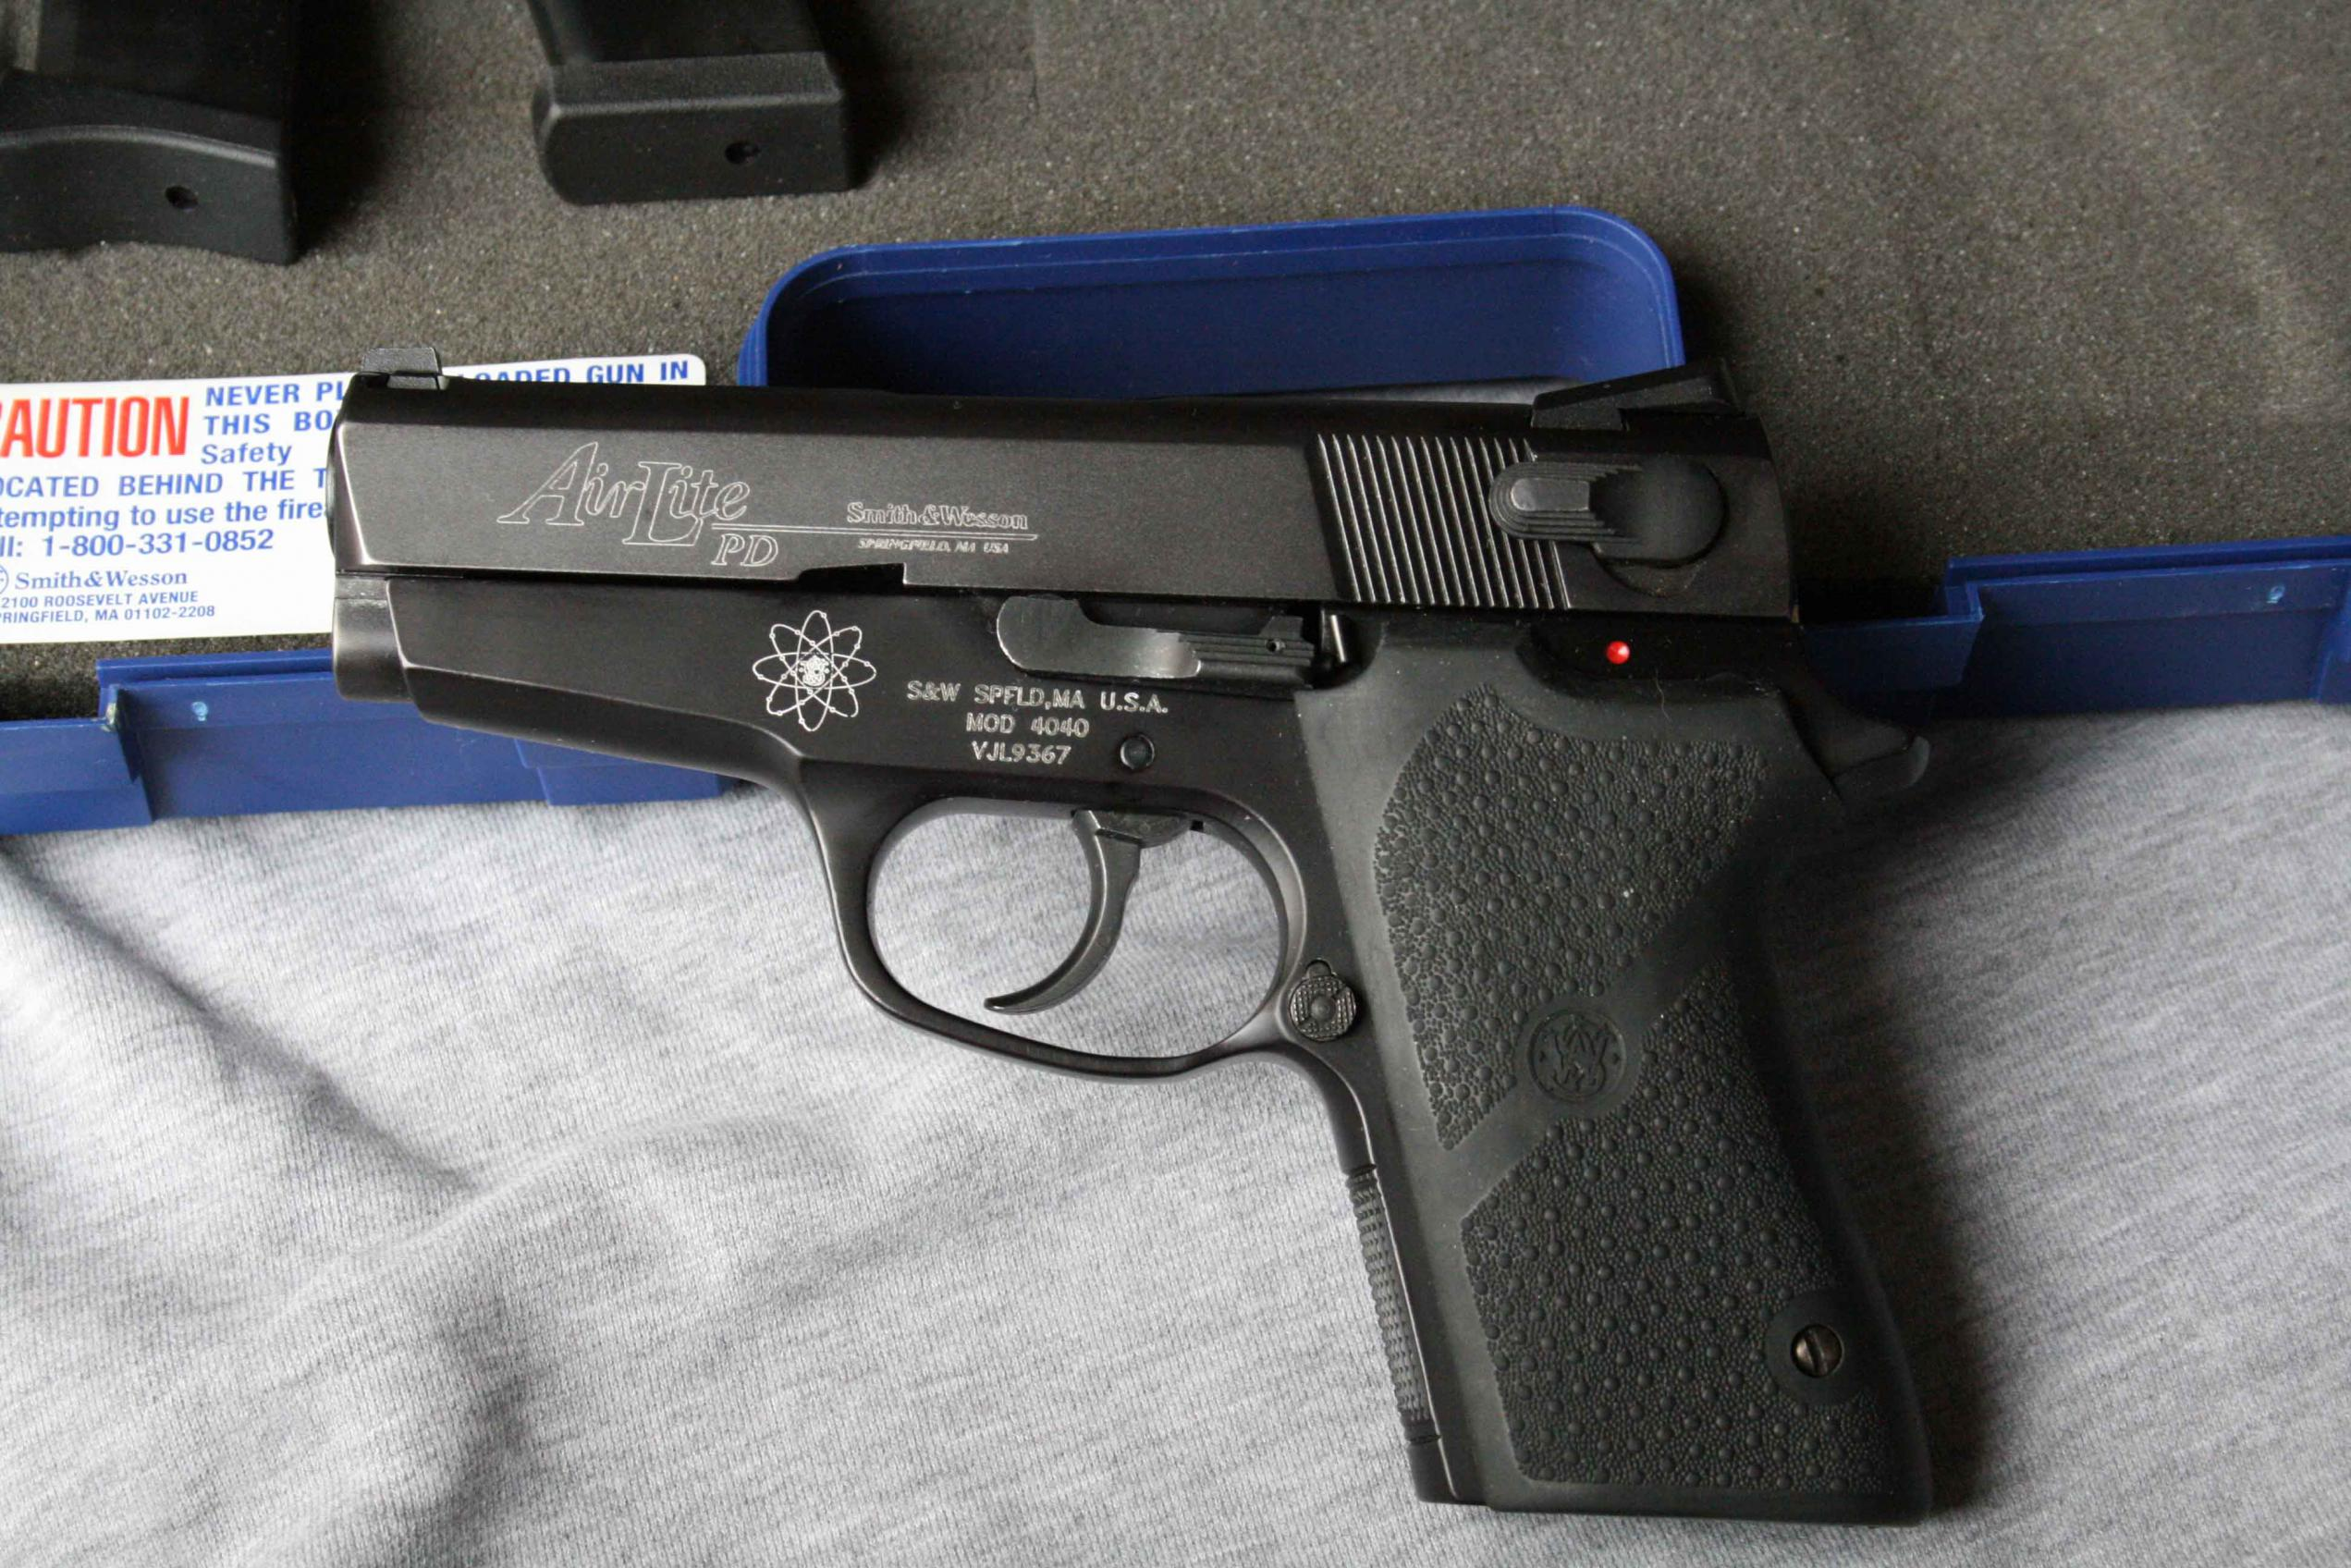 My new to me Smith & Wesson 4040PD-left1.jpg